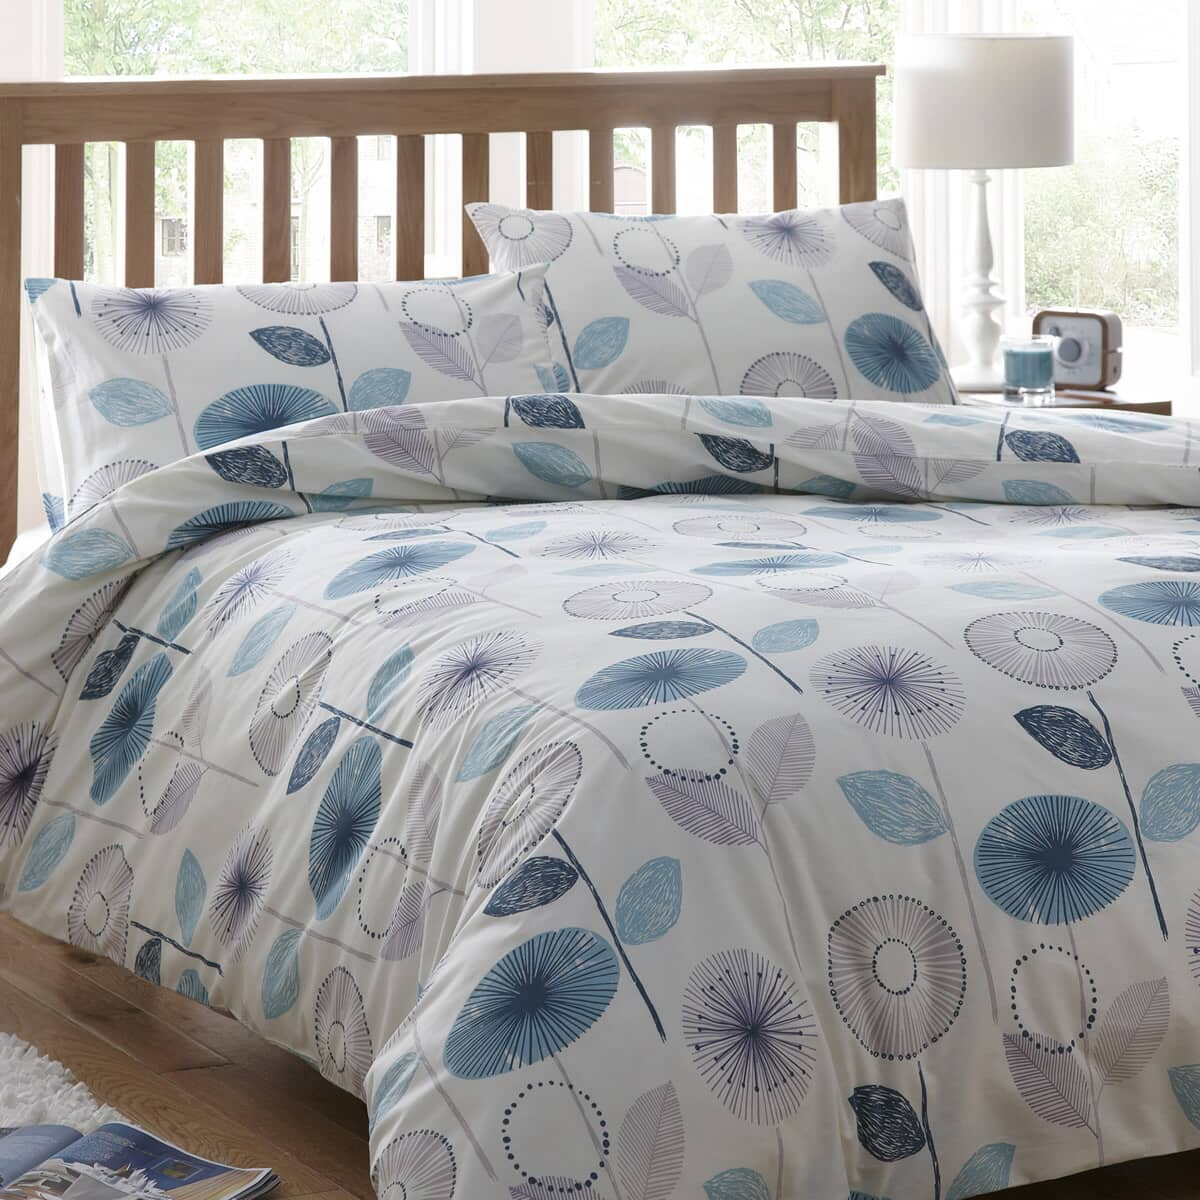 Luxury bedding, made ethically, grown organically, and priced fairly. Try us for 30 nights - free shipping and painless returns. Introducing the Boll & Branch Mattress - a luxury bed at a far more comfortable price.